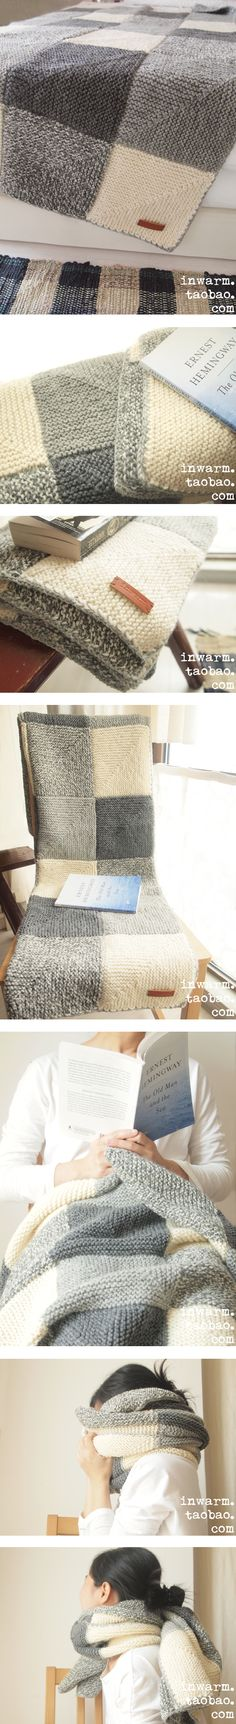 knit blanket ~ inspiration only, no pattern